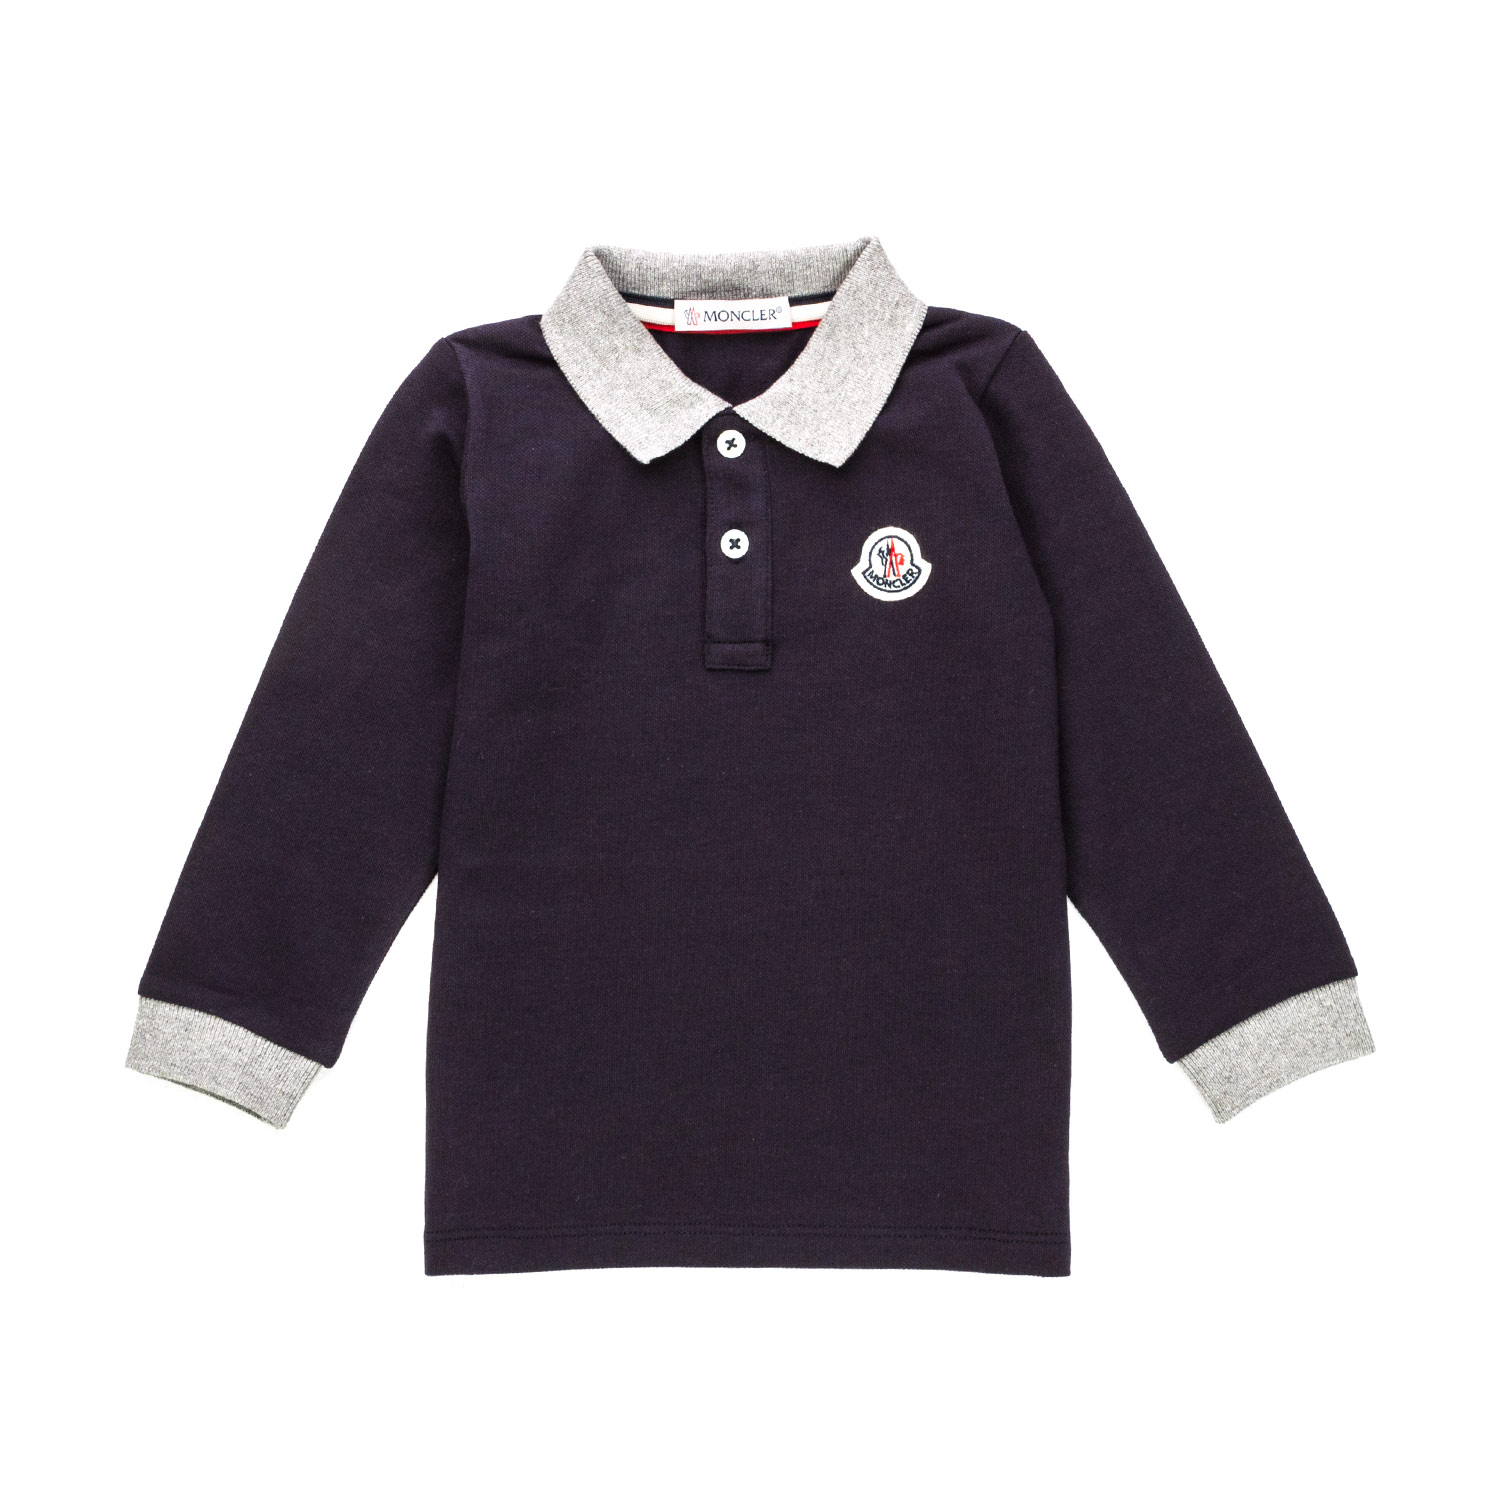 6ea45e40b Moncler - Baby Boy Long-Sleeved Polo Shirt - annameglio.com shop online